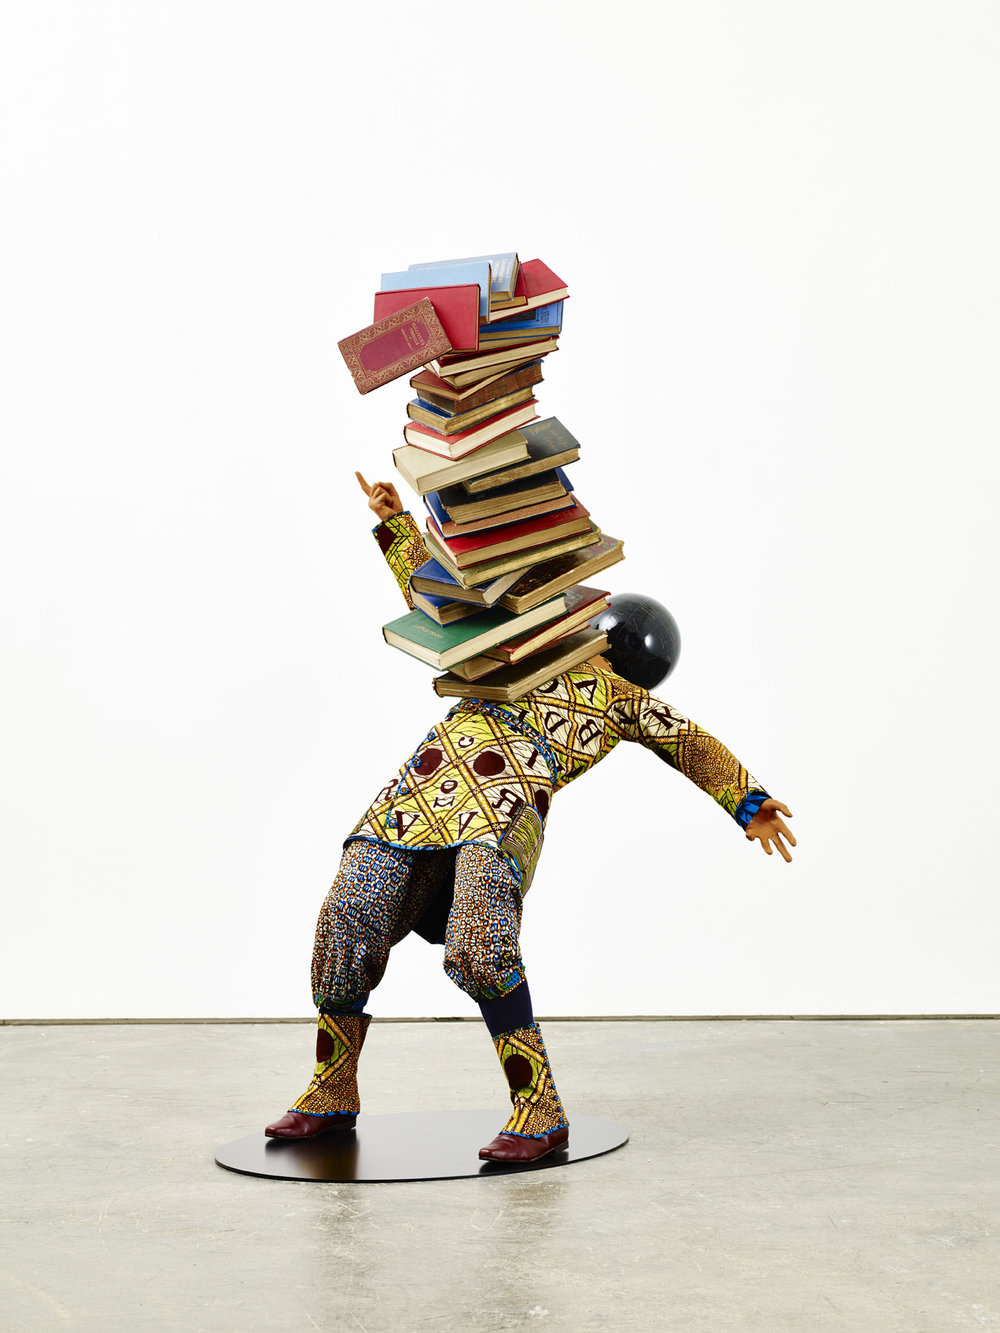 BOY BALANCING KNOWLEDGE 2015